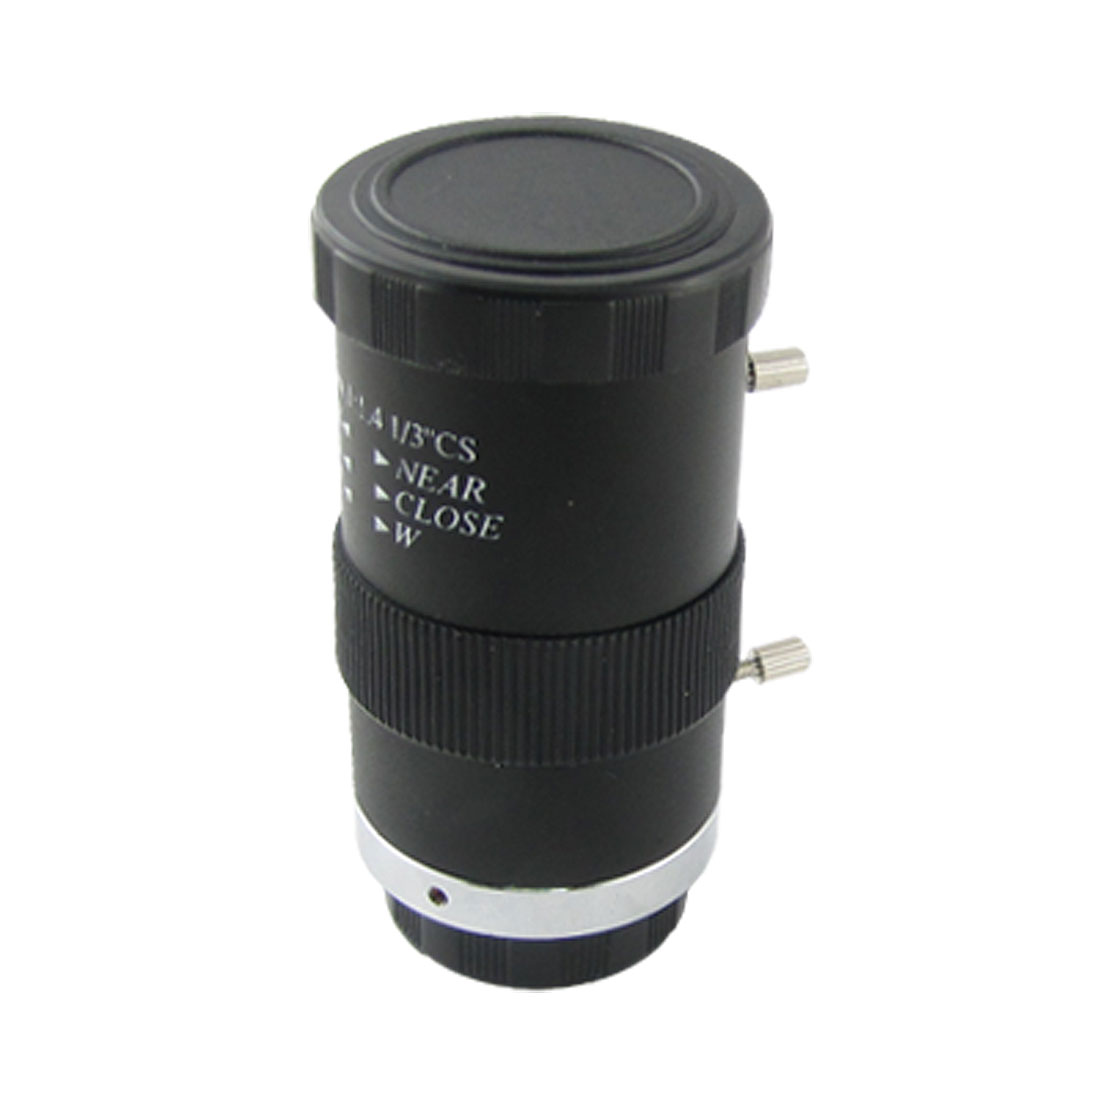 "6-15mm 1/3"" F1.4 CS Mount Varifocal CCTV Manual Lens"